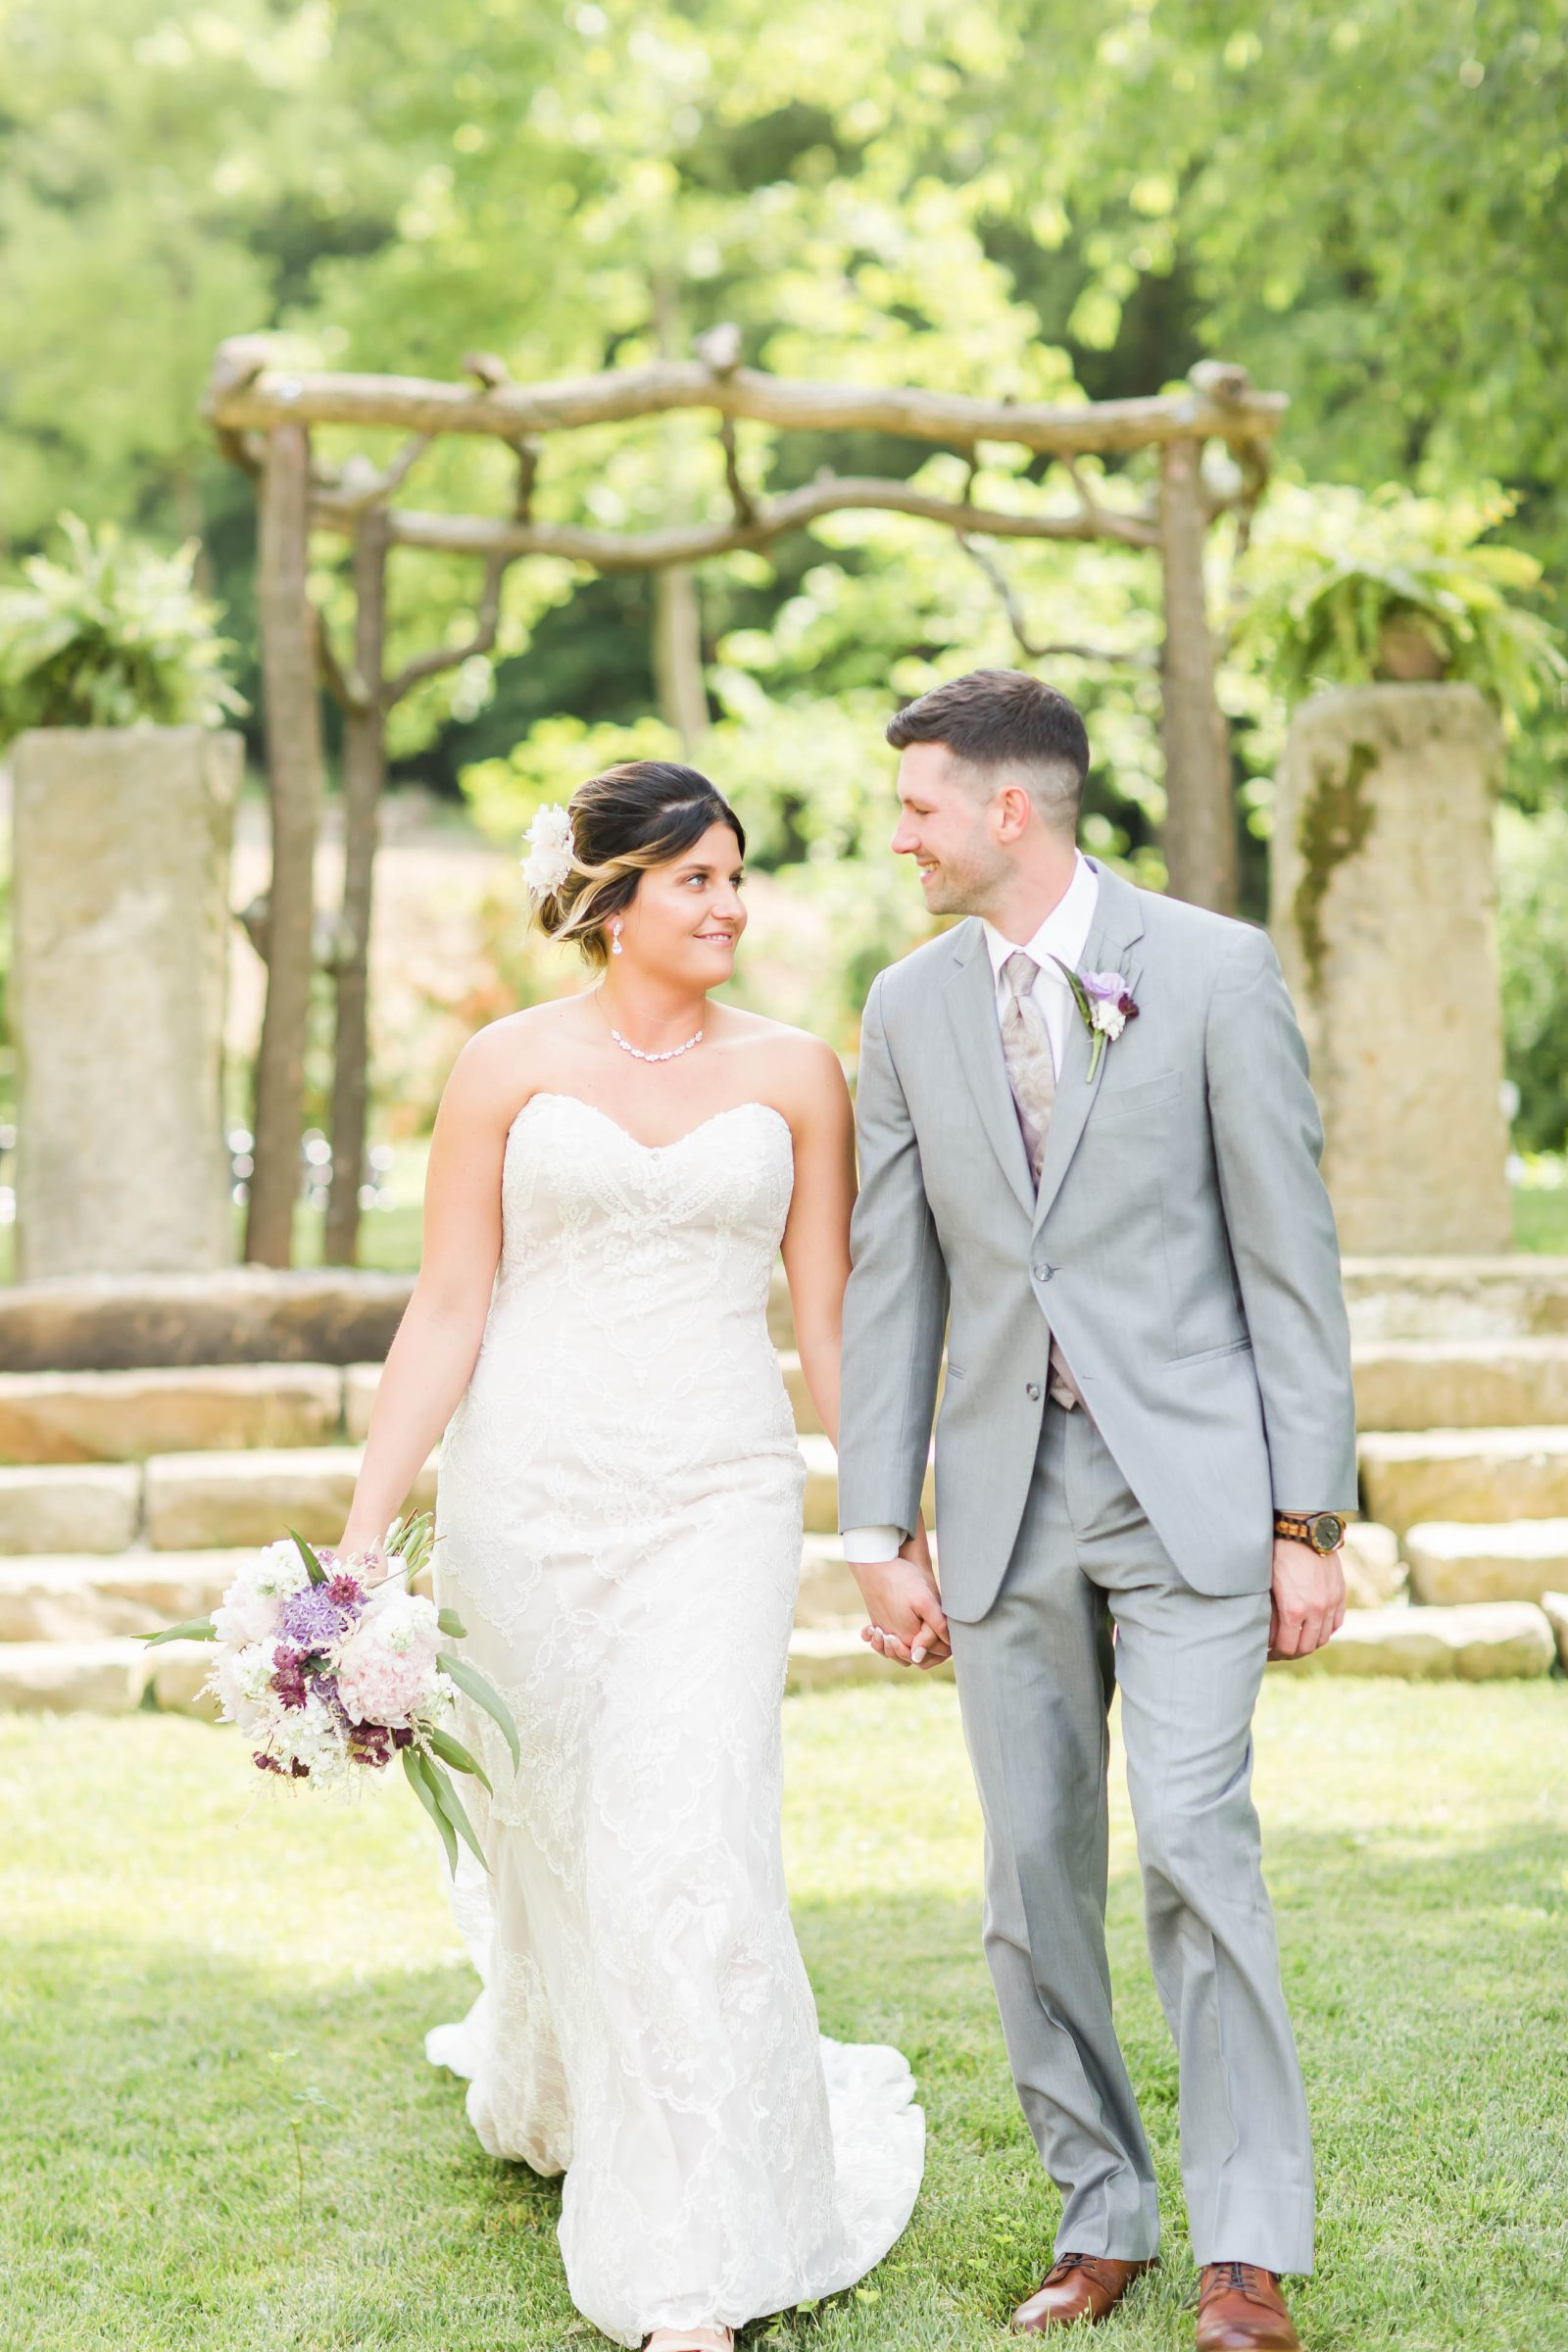 rivercrest-farm-summer-wedding-loren-jackson-photography-45